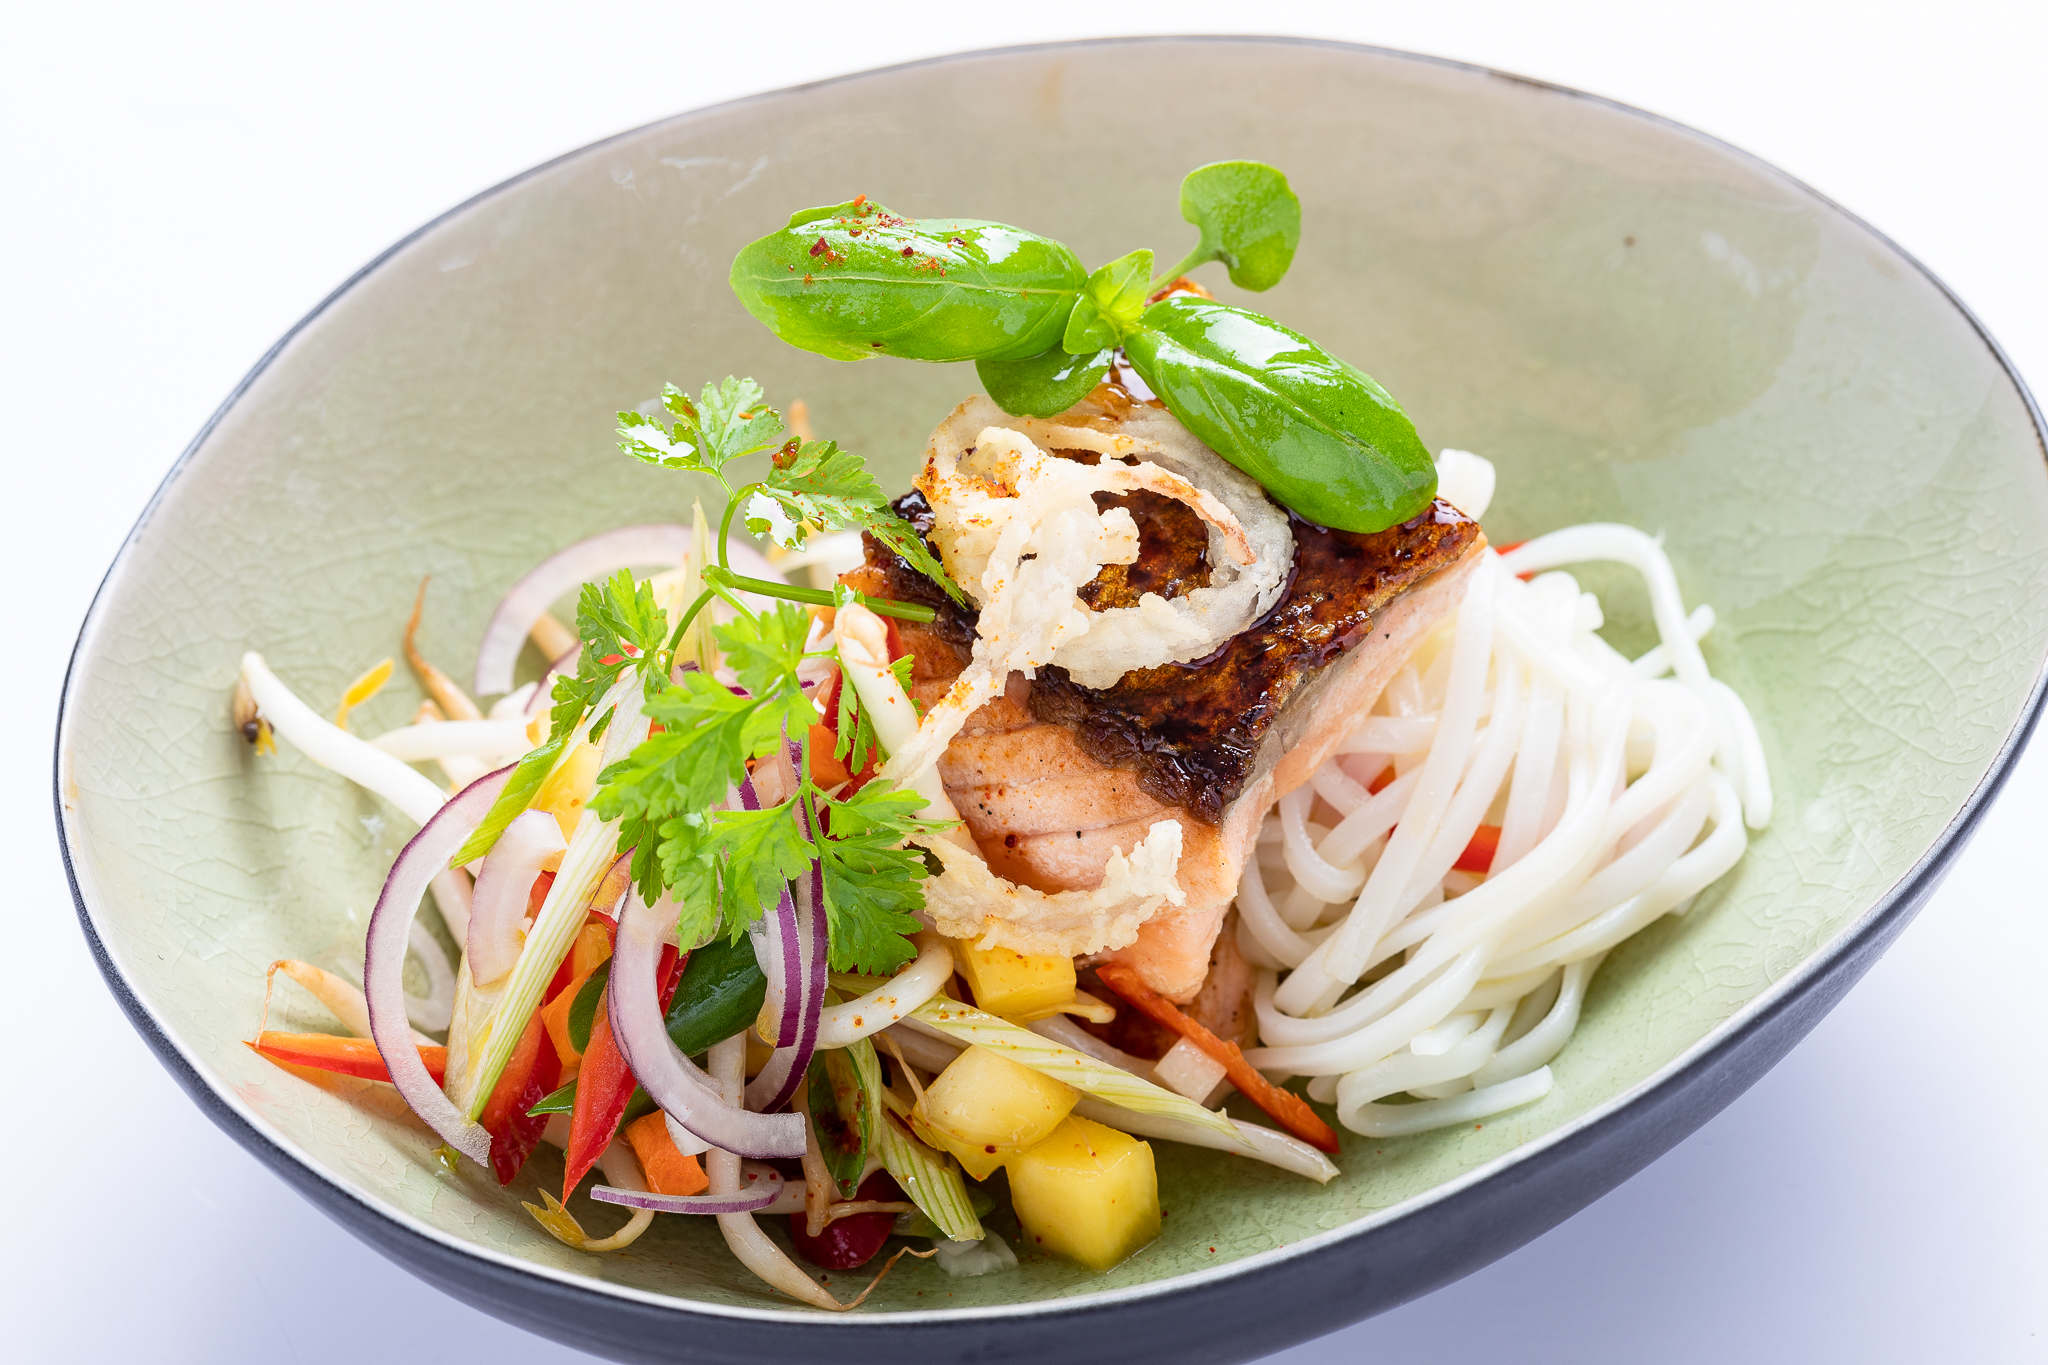 Salmon Japanese style lacquered with a teriyaki sauce, mango salad, rice noodles - DEN GOUDEN KARPEL